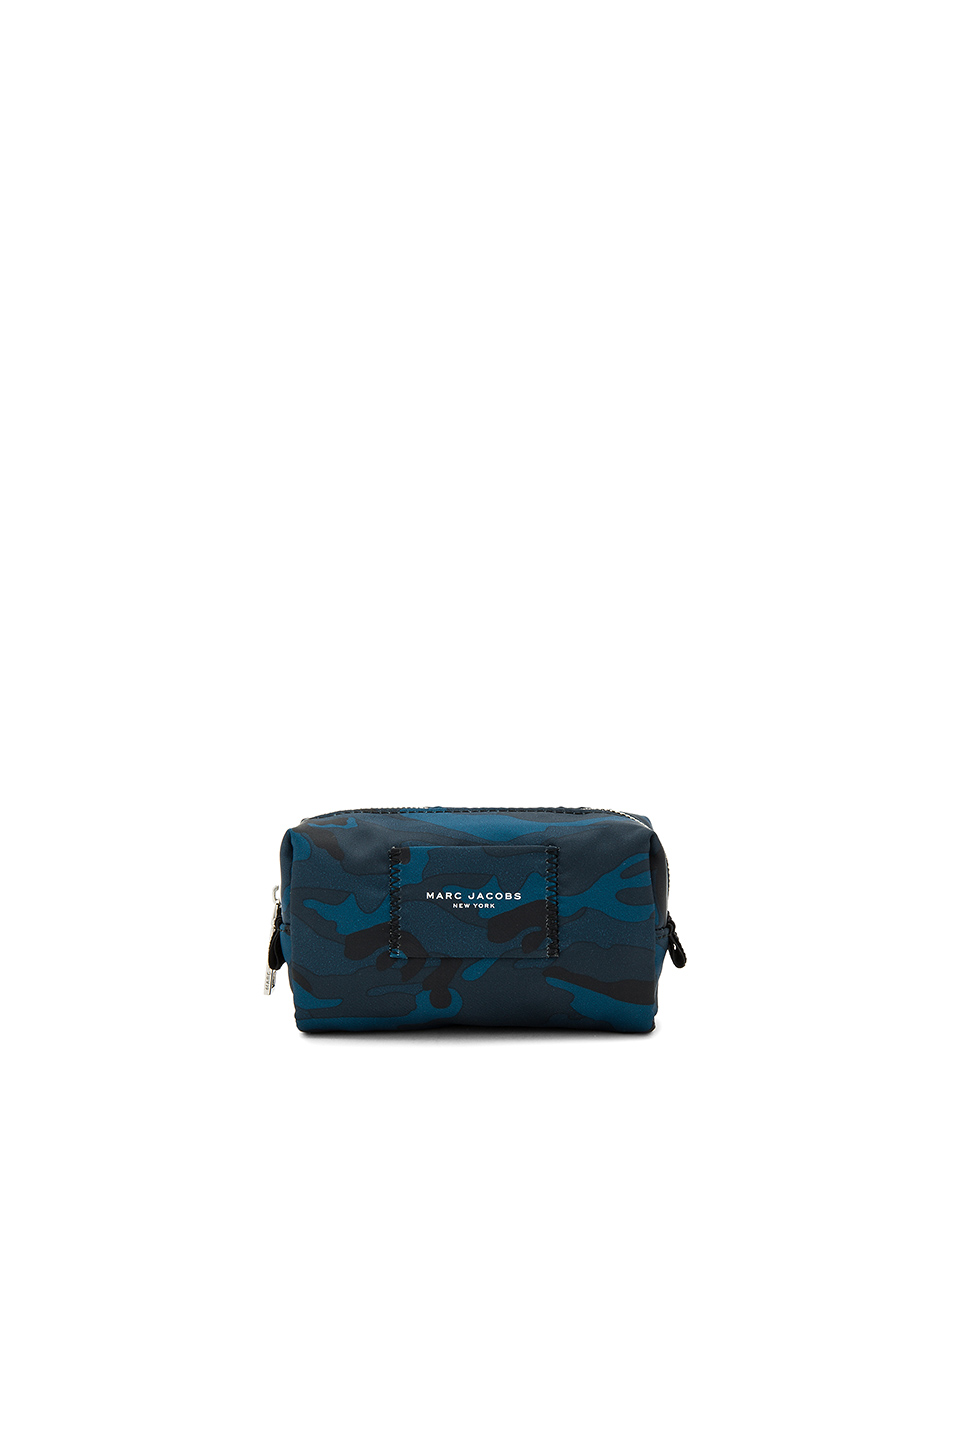 Marc Jacobs Cosmetic Bag in Navy Multi